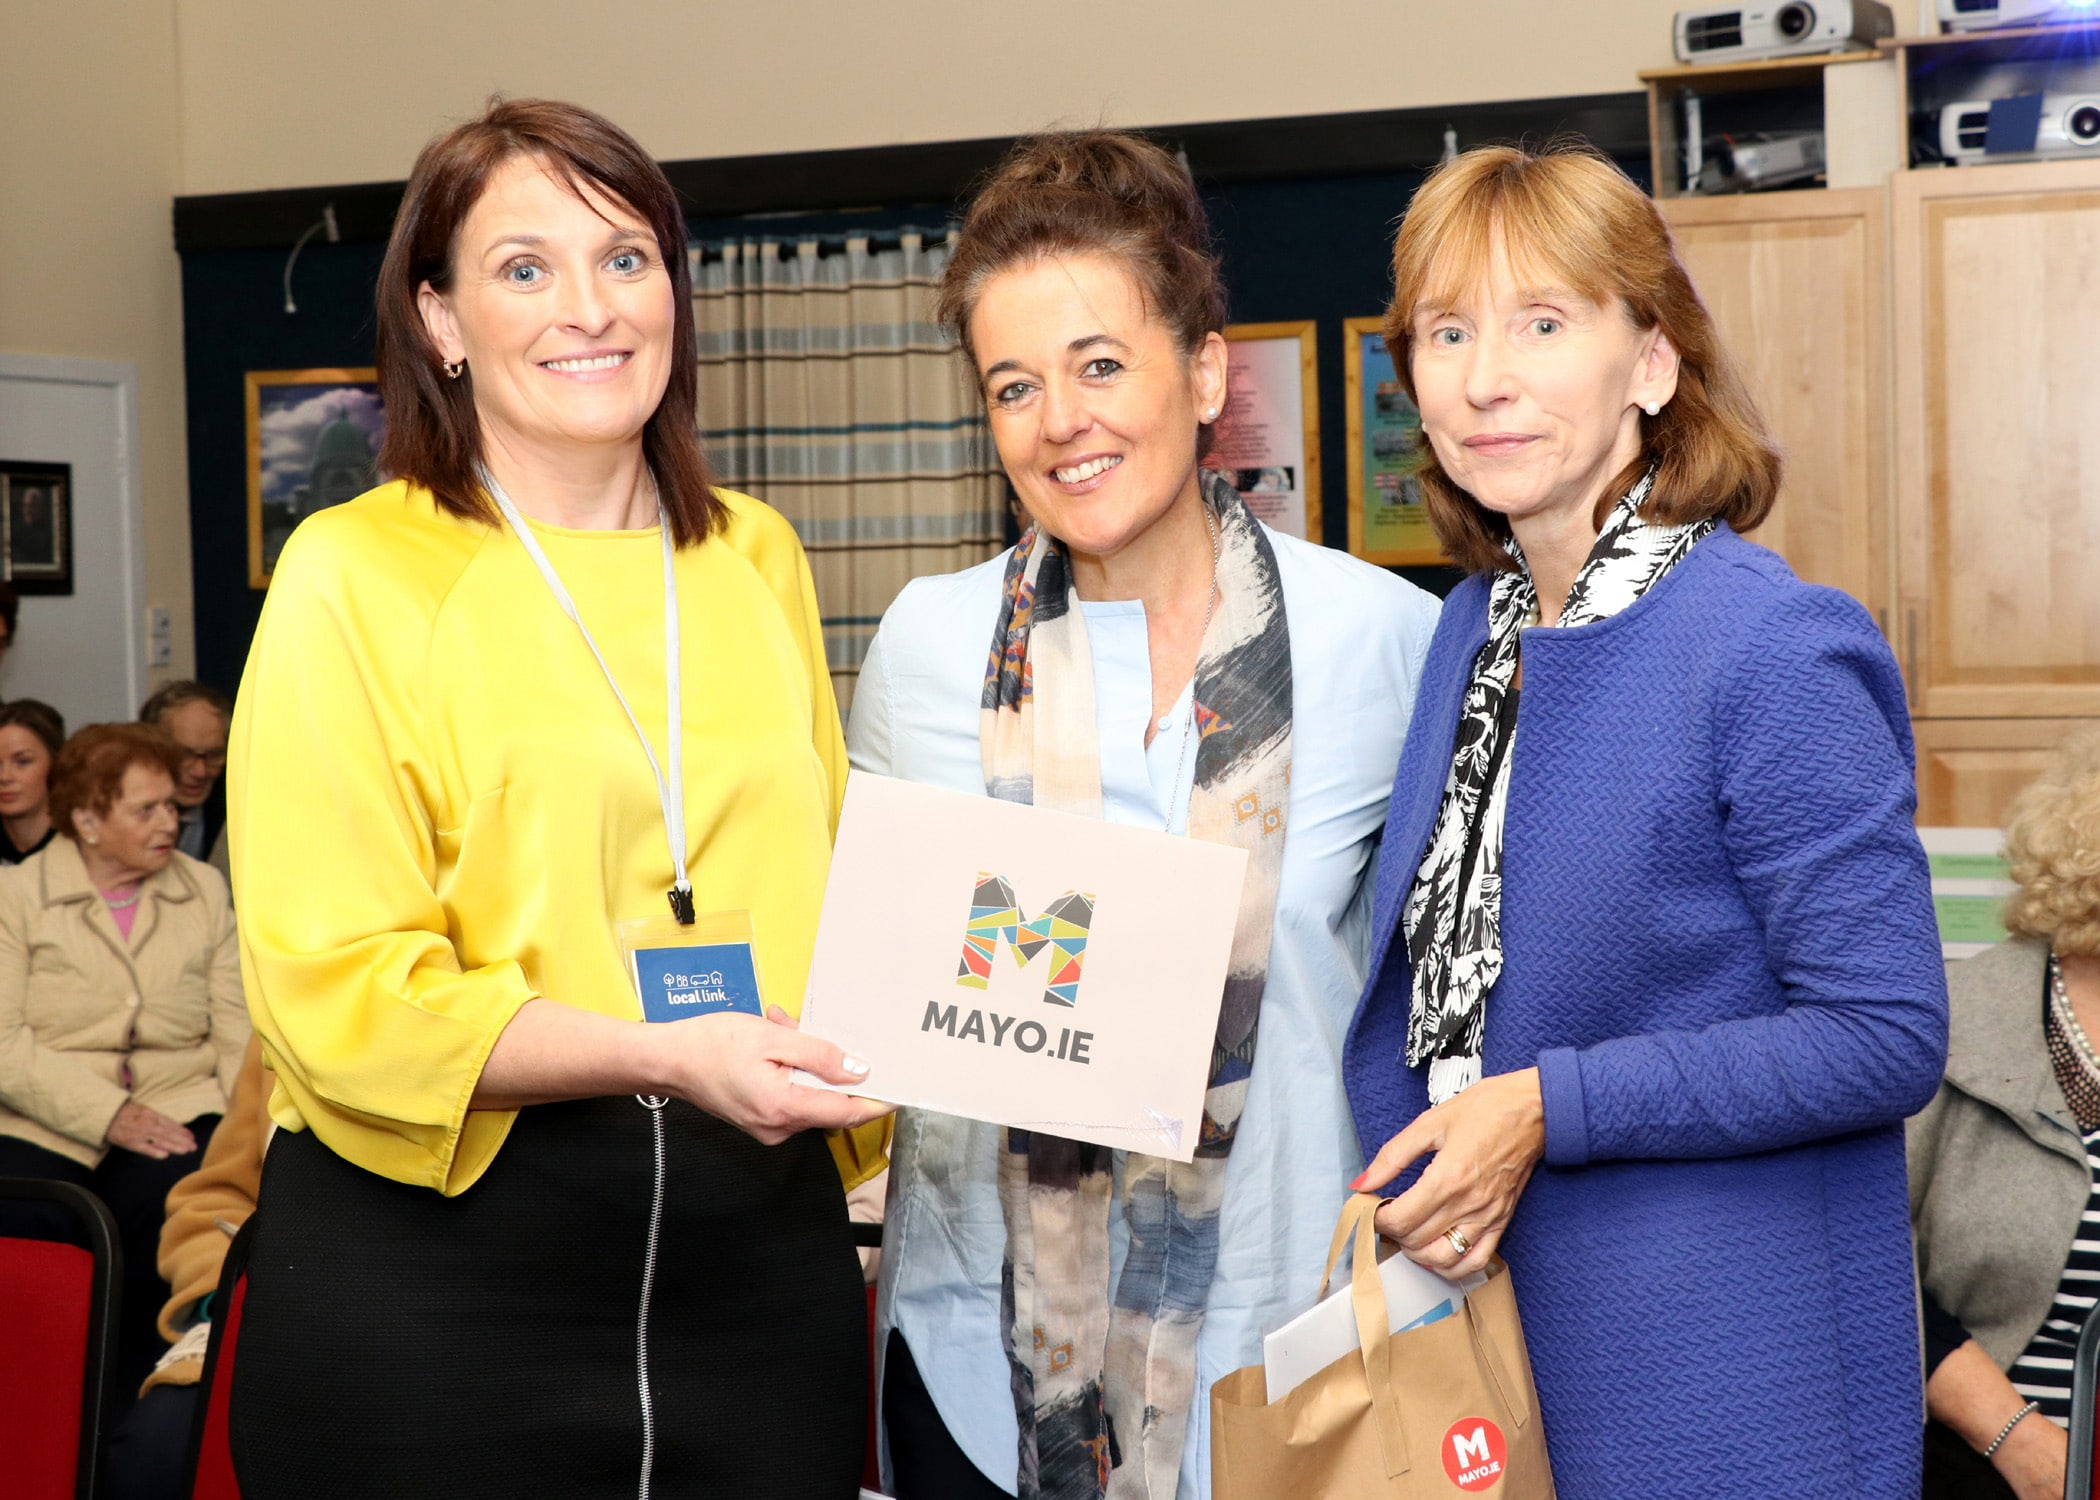 Sarah Togher presenting to Syliva McCarthy and Bernie O'Brien.